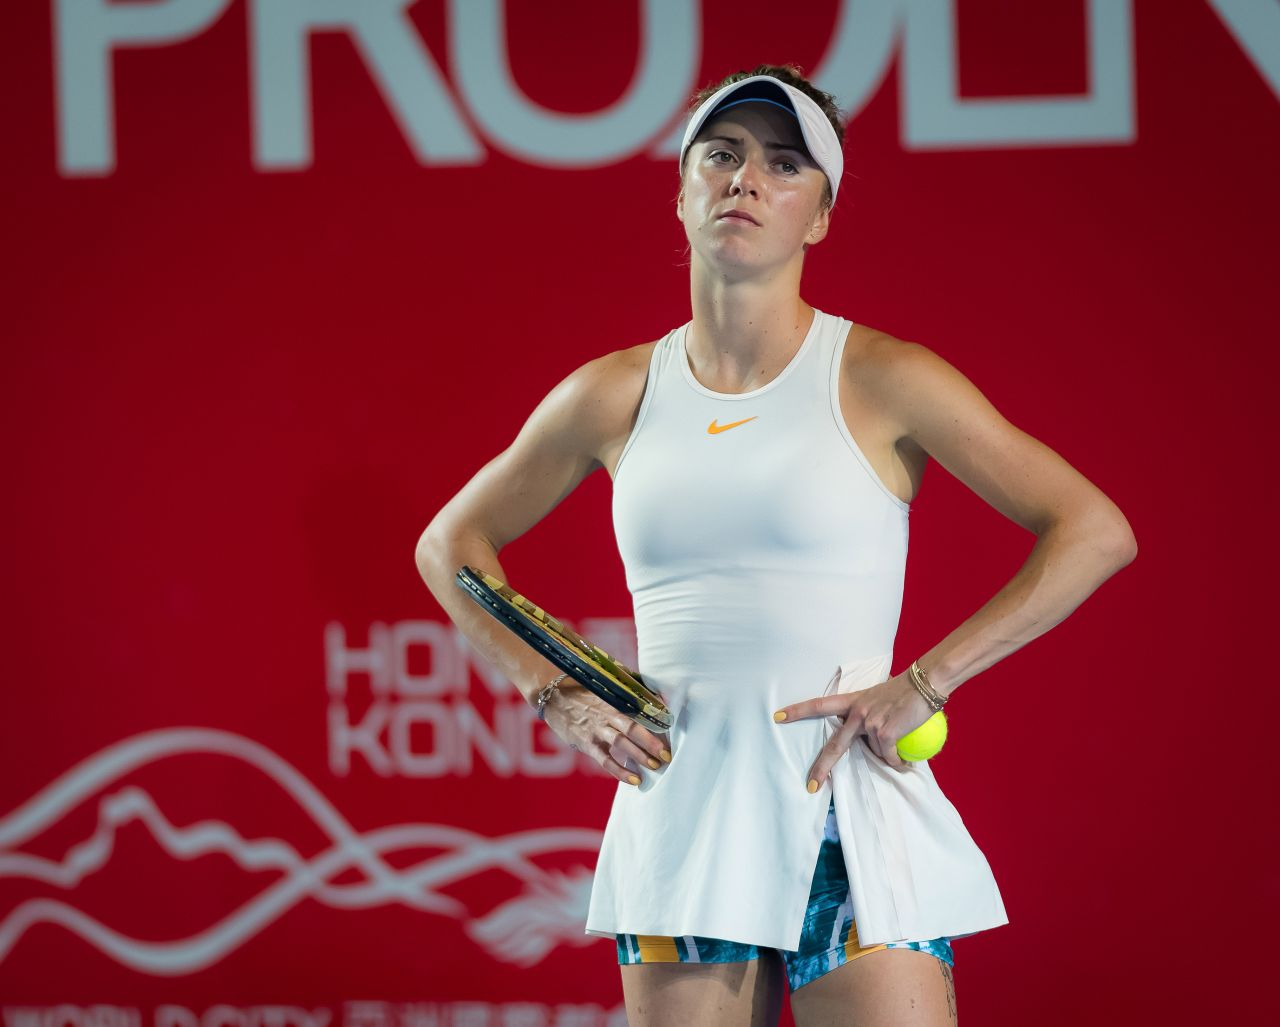 Celebrity Elina Svitolina nudes (29 photos), Pussy, Is a cute, Twitter, legs 2020